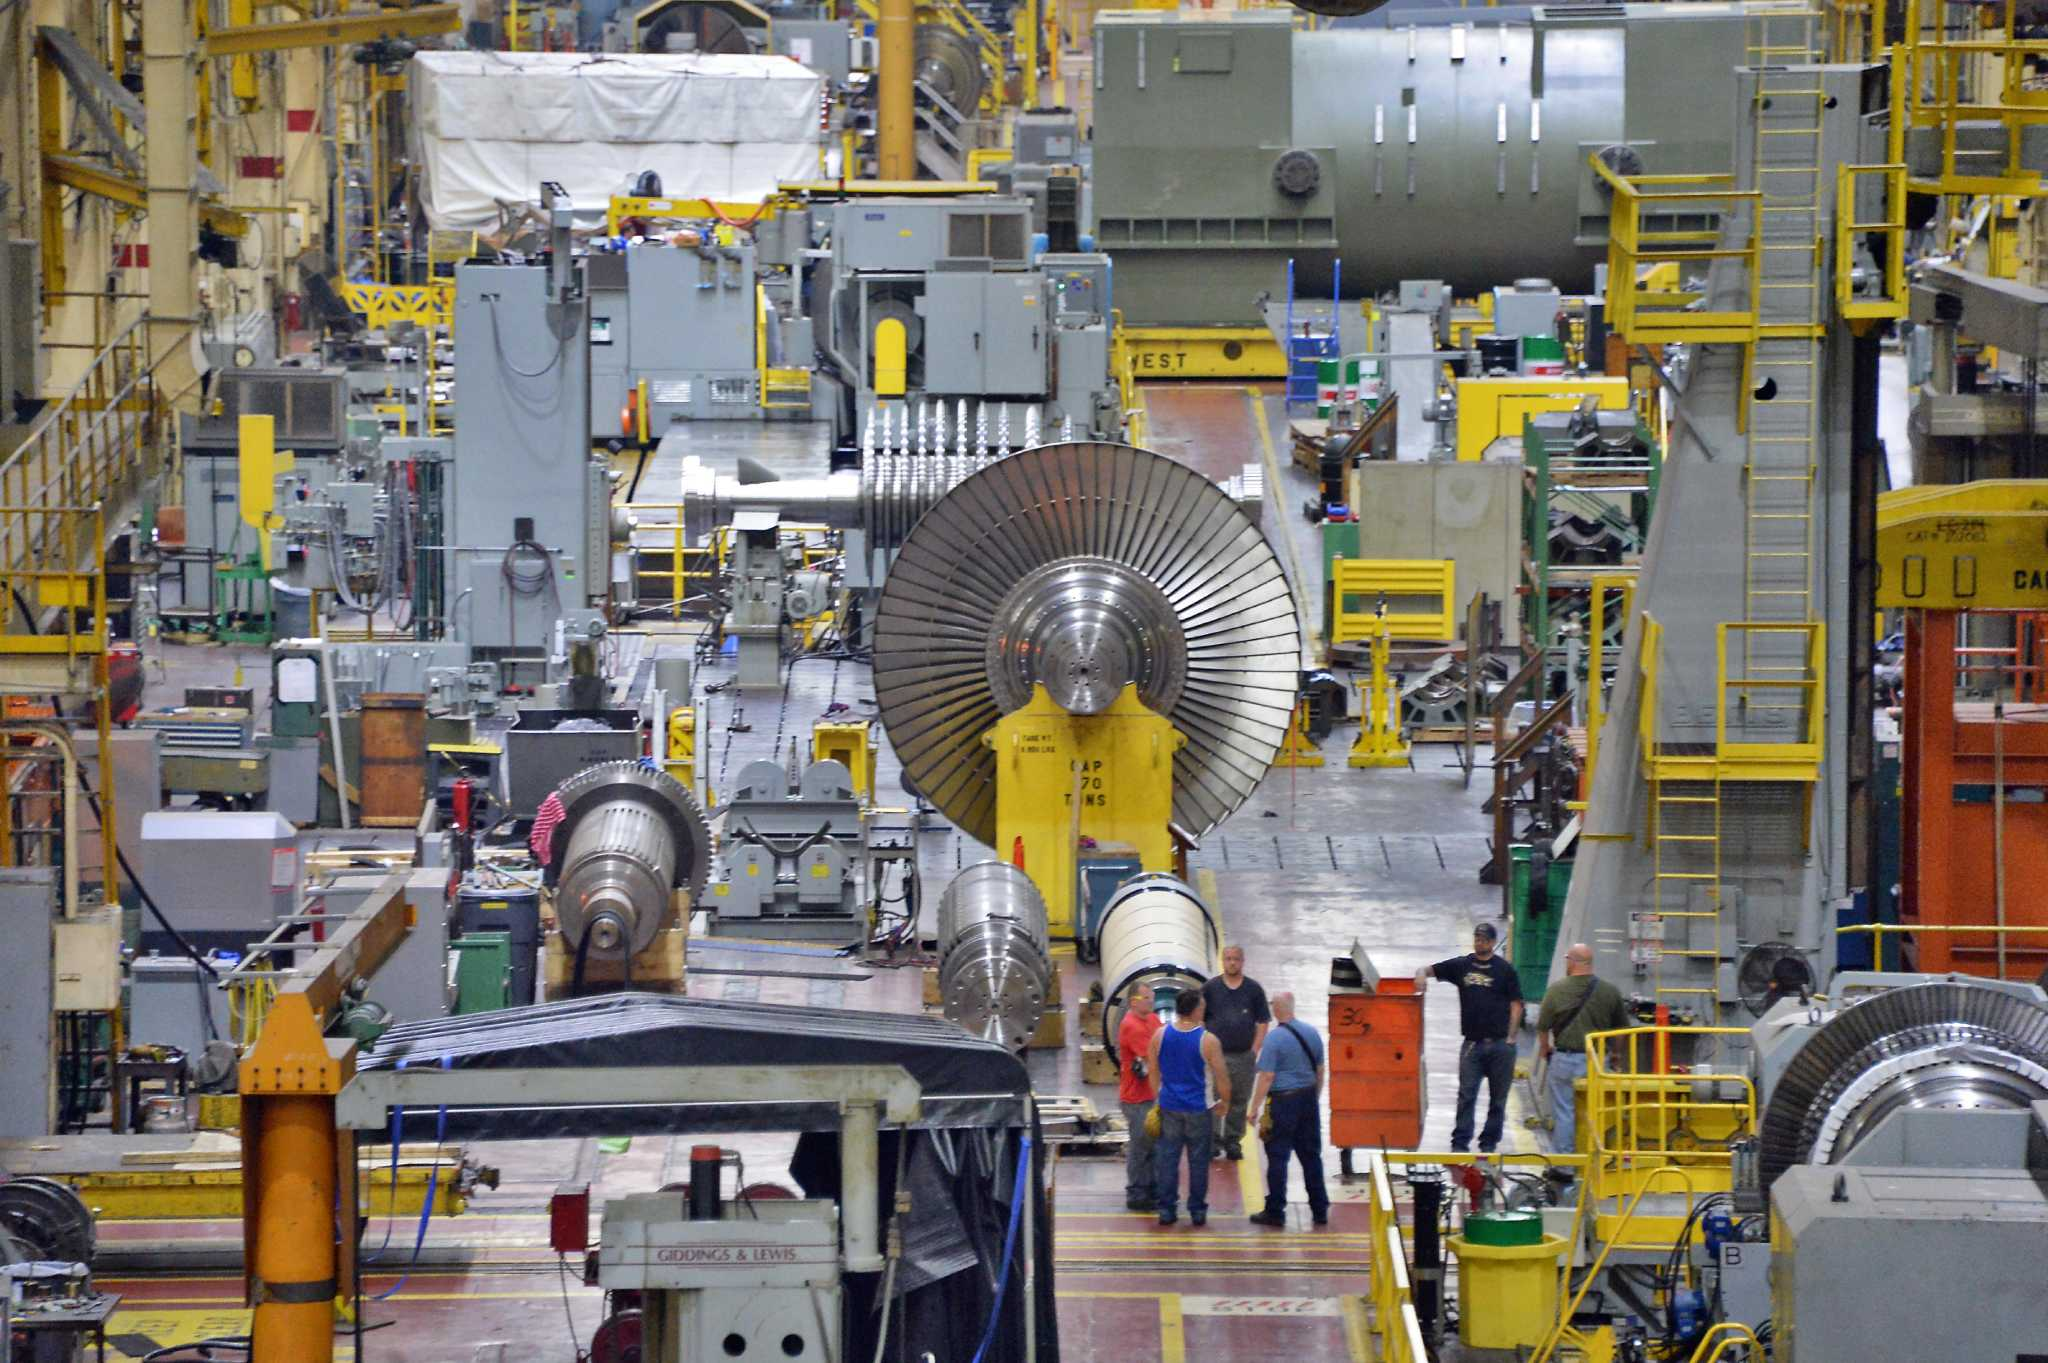 GE invests in Power & Water plant in Schenectady Times Union